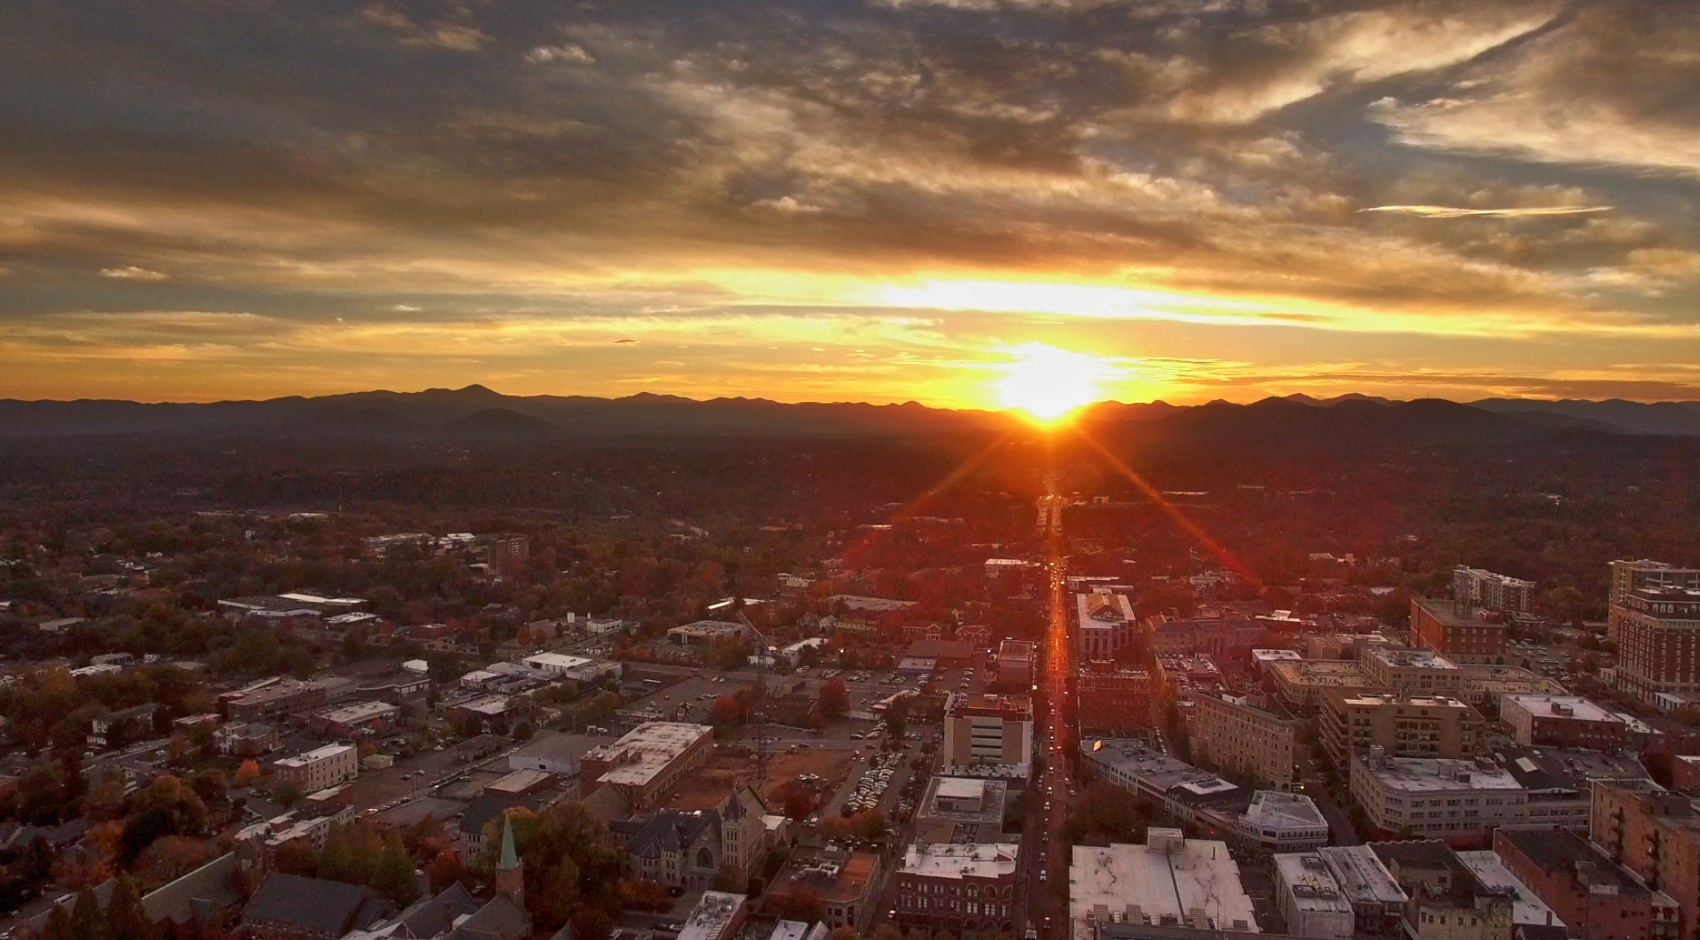 downtown sunset drone photo.jpeg